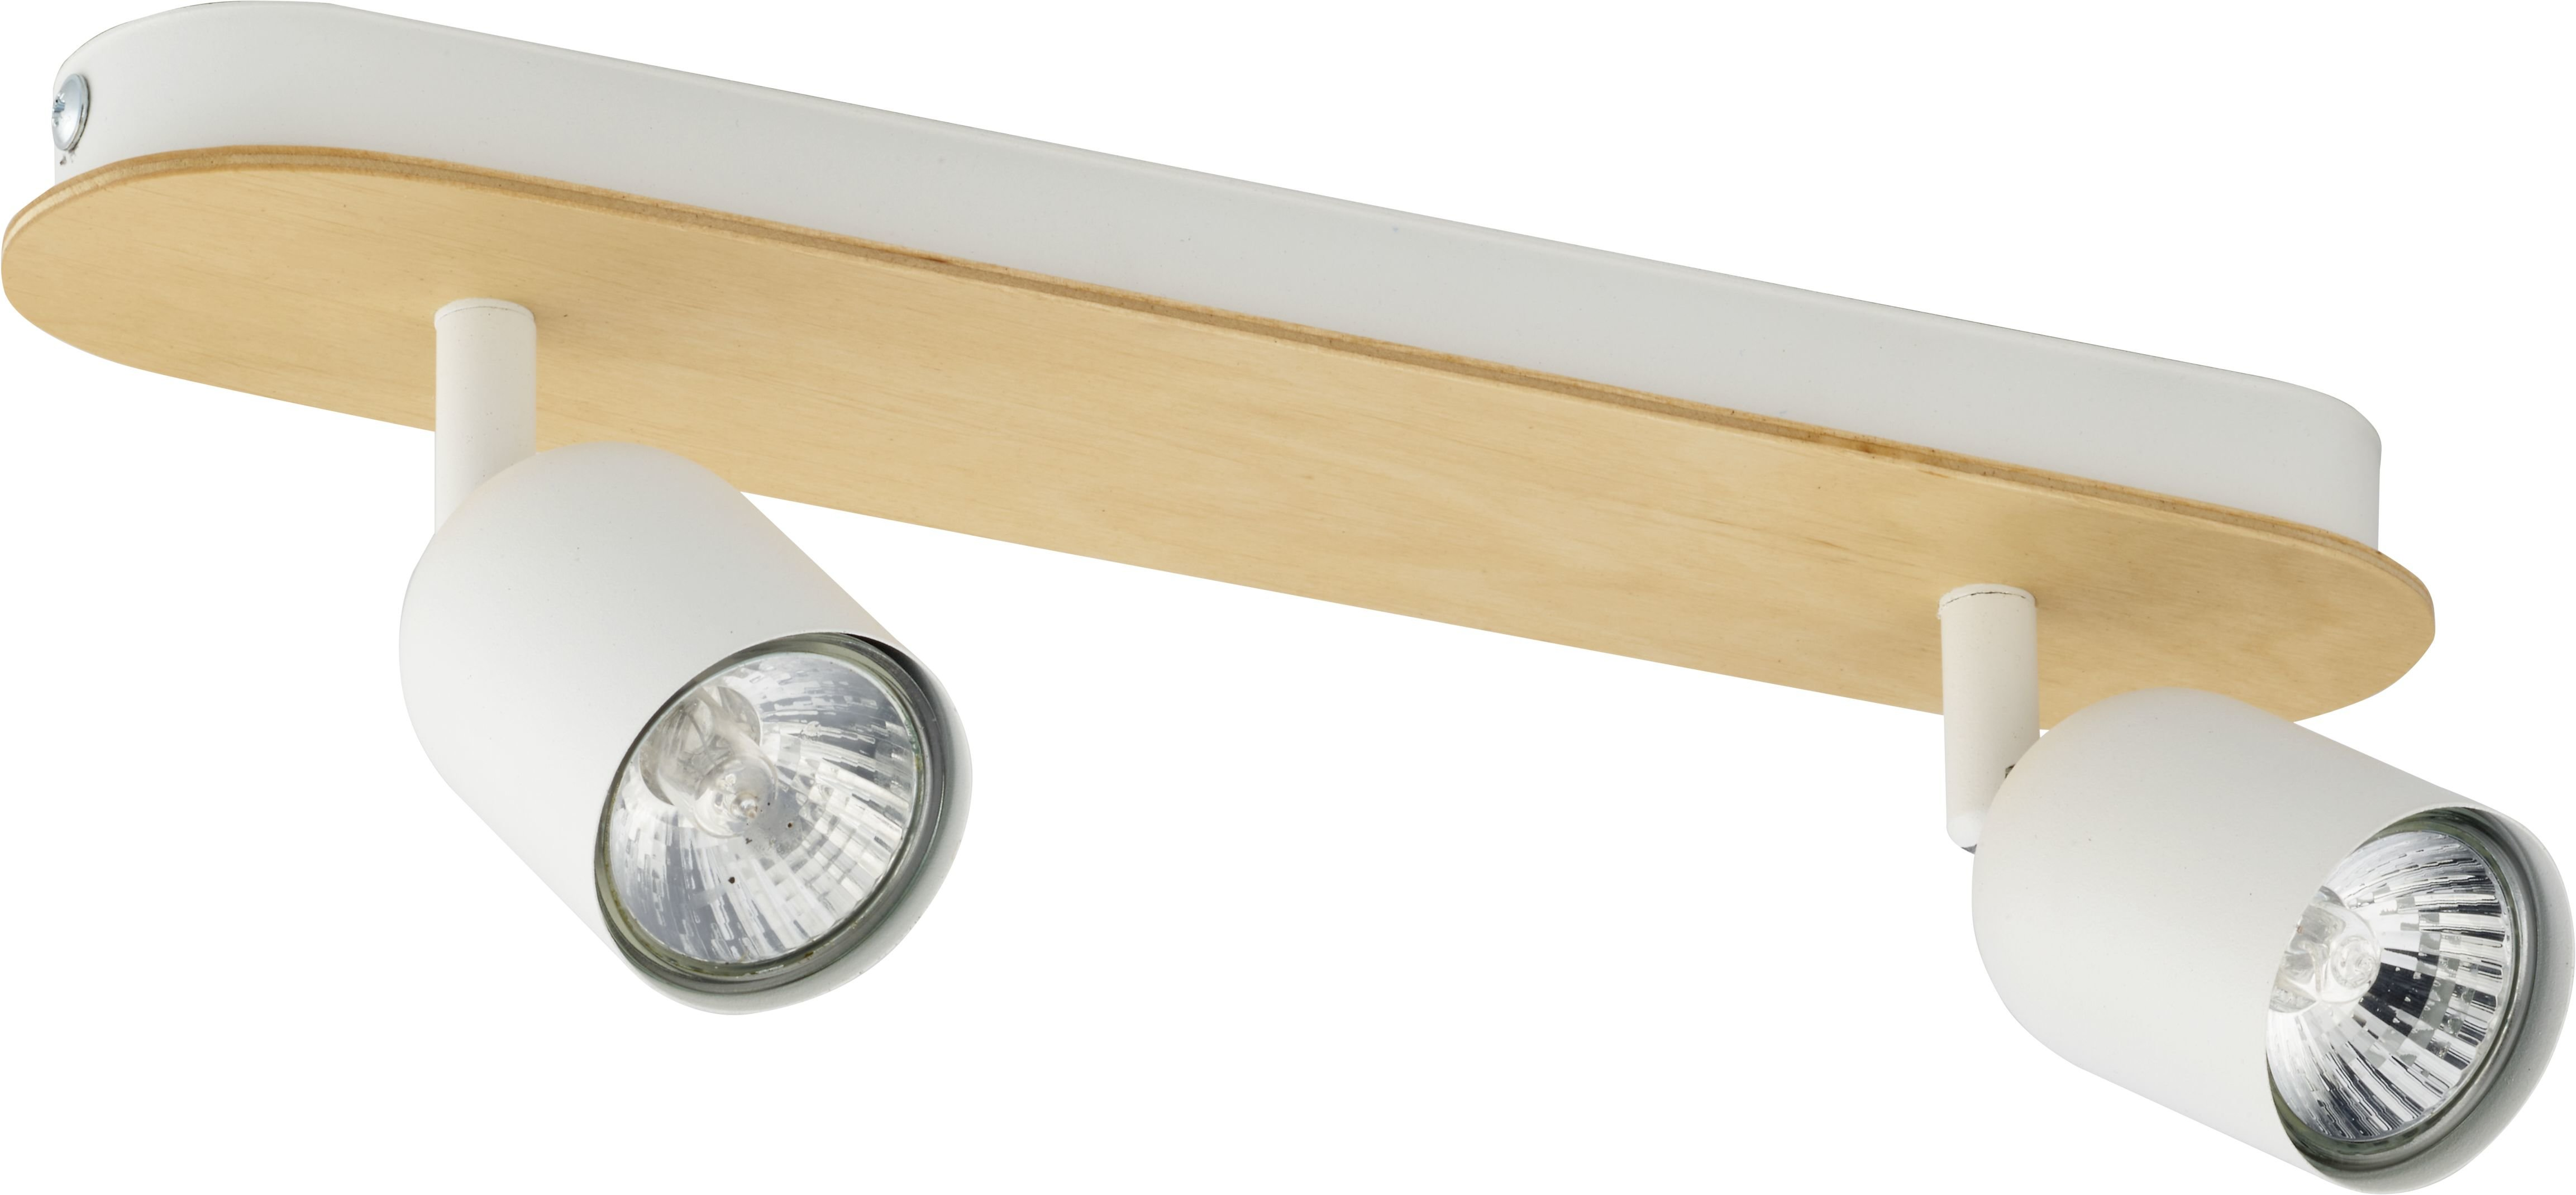 Спот TOP WOOD TK-Lighting 3295